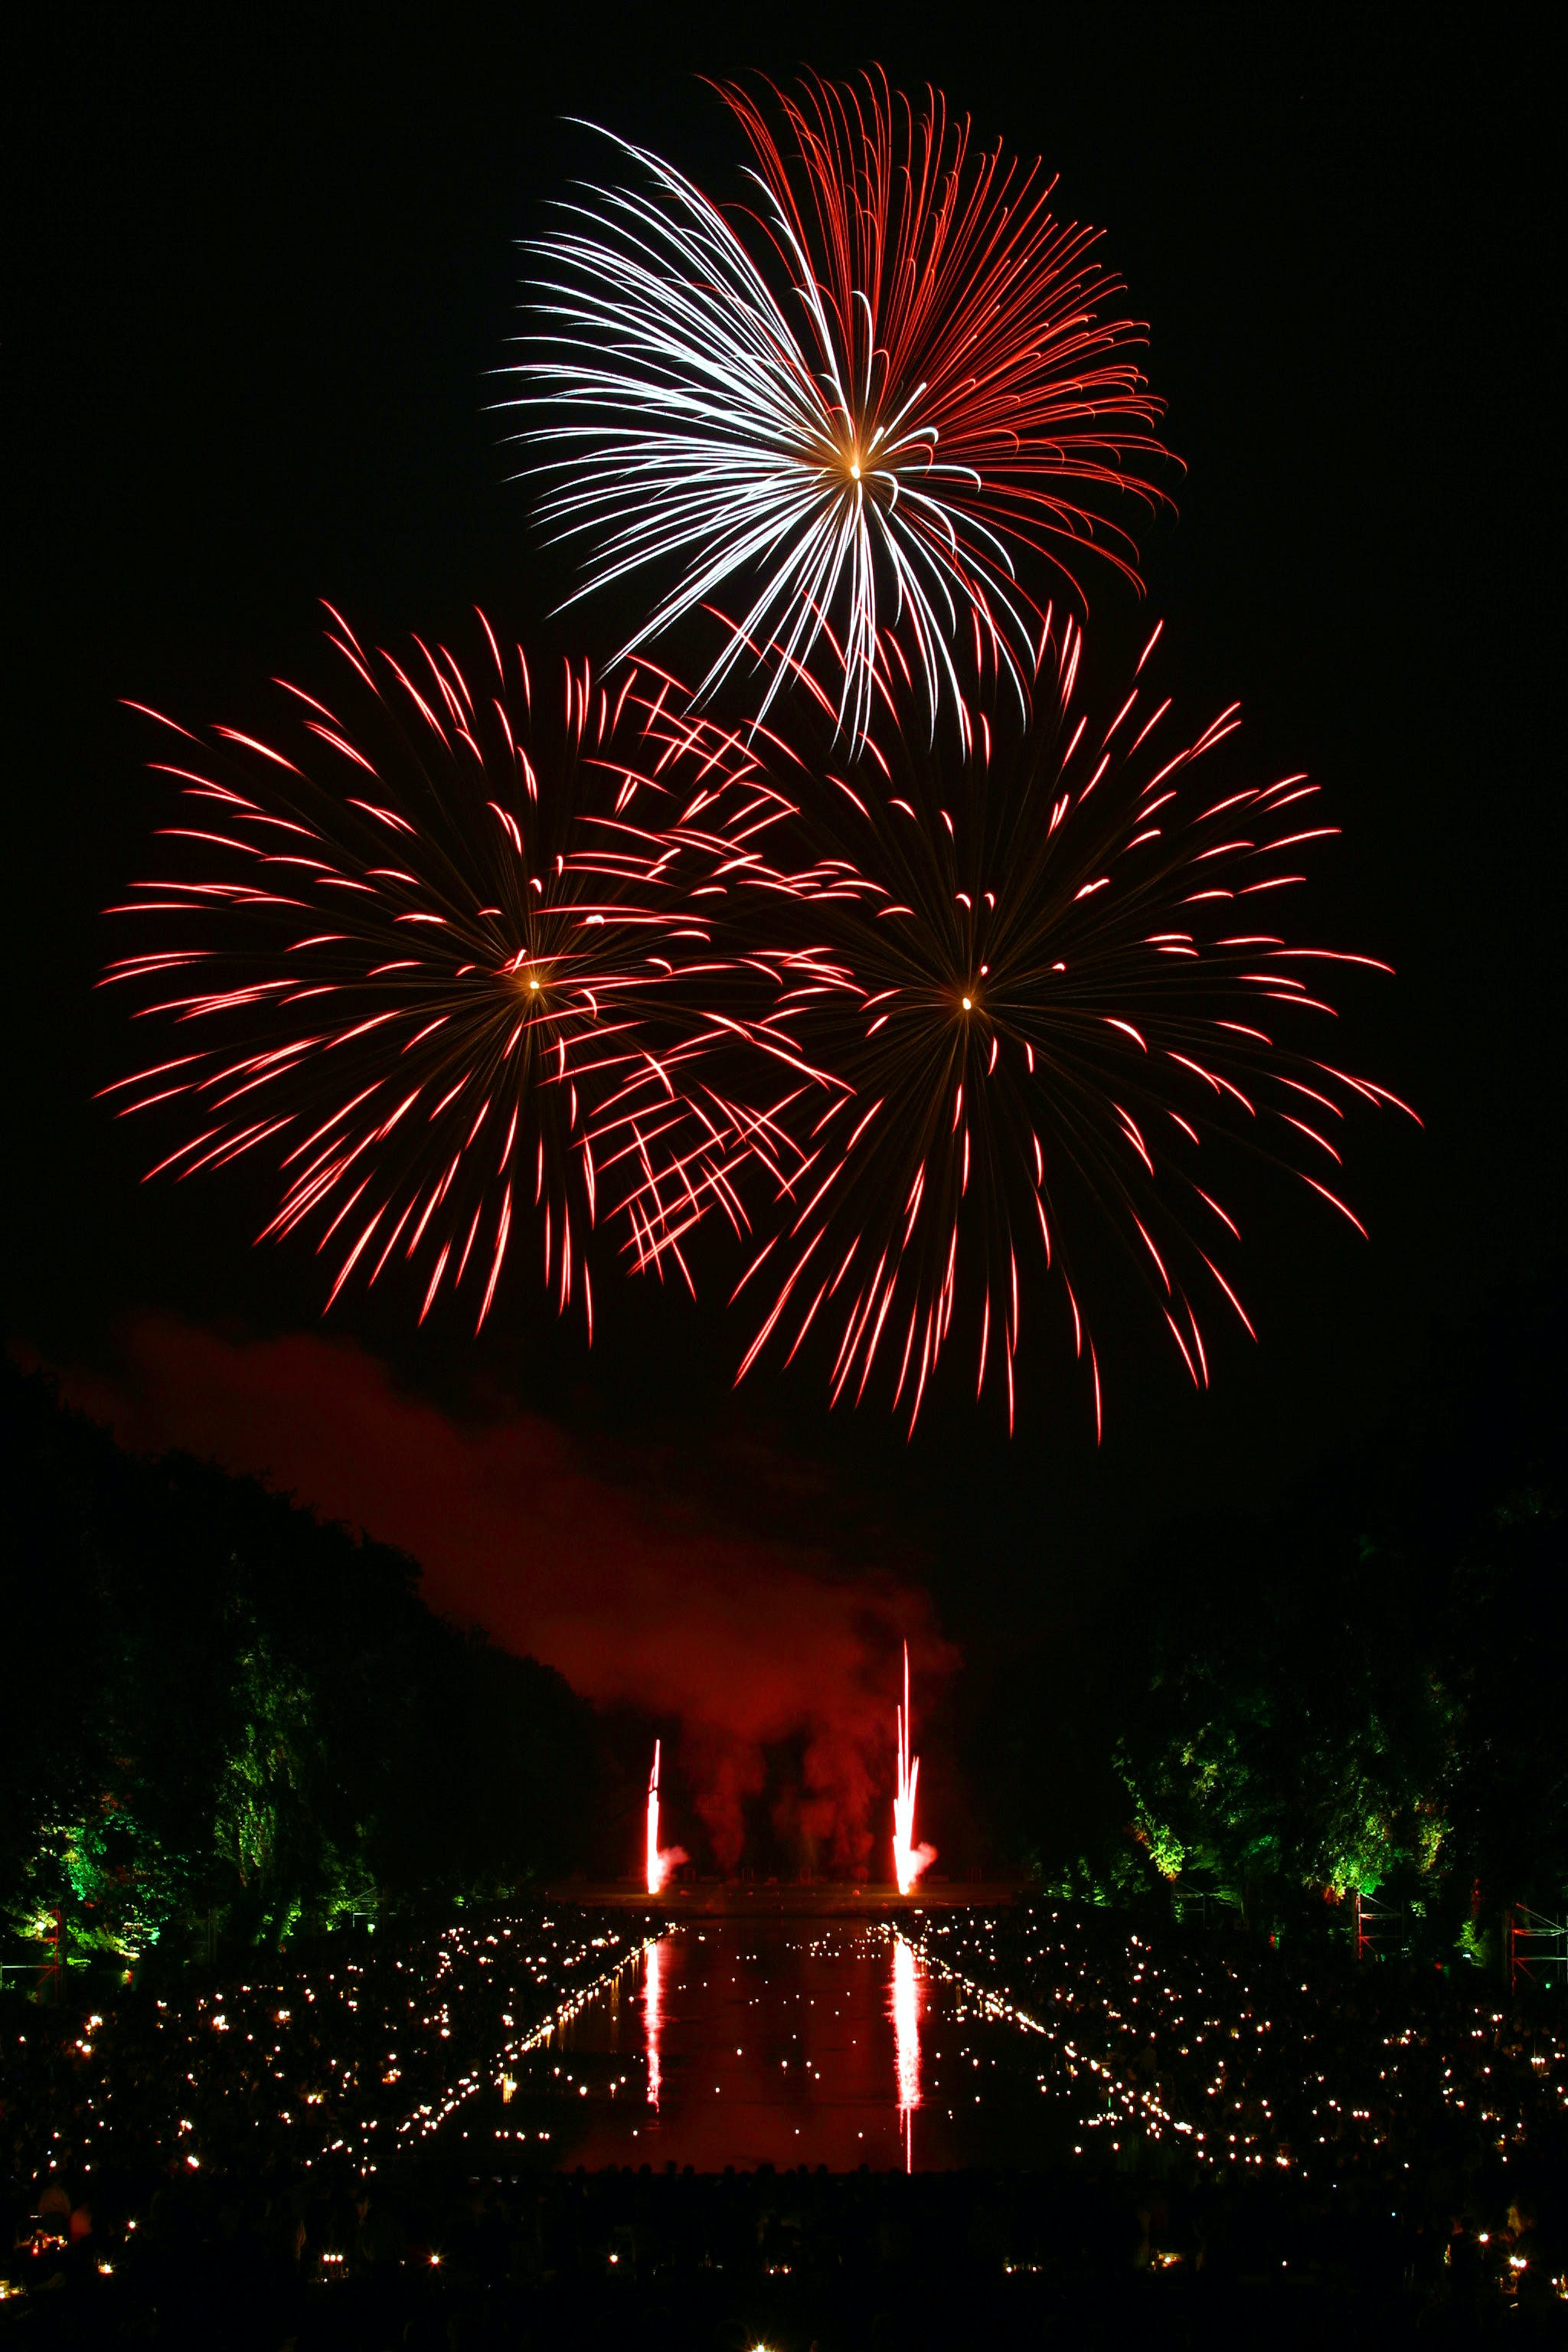 Red and White Fireworks Scattered during Nighttime